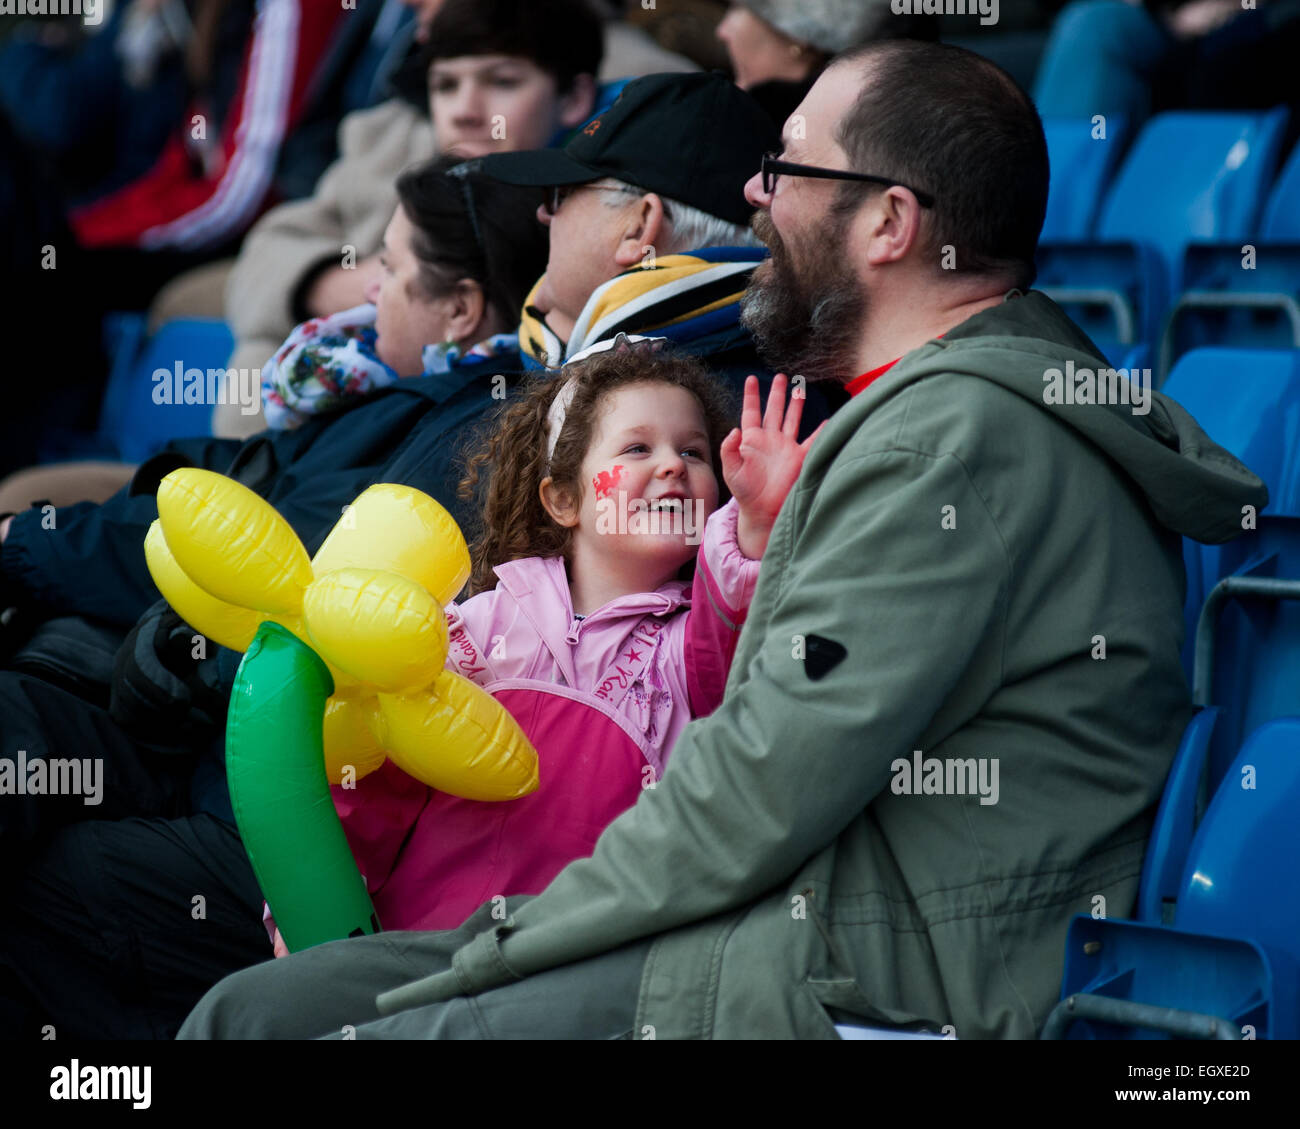 Pix of Welsh supporters at London Welsh v London Irish Aviva Premiership Rugby match on St Davids Day (1 March 2015) - Stock Image